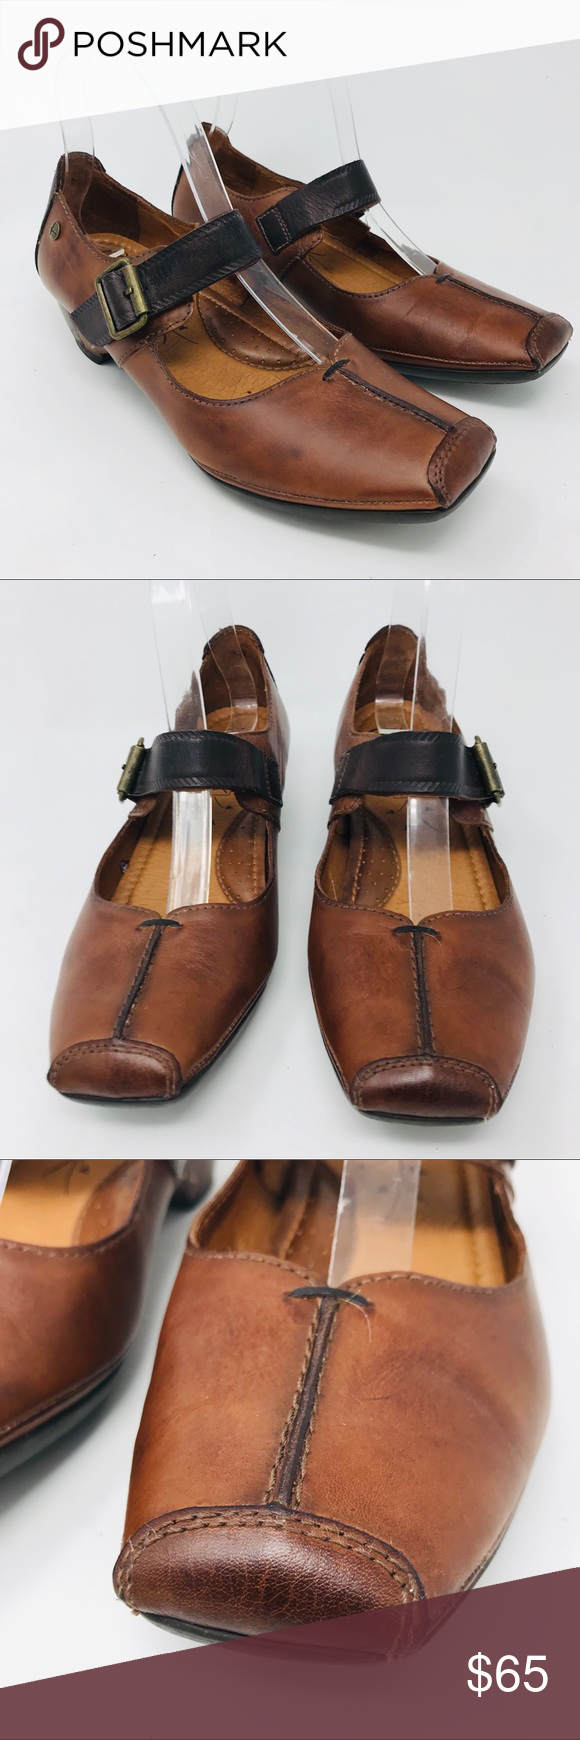 Pikolinos Gandia Brown Mary Janes Shoes Euro 39 Pikolinos Gandia